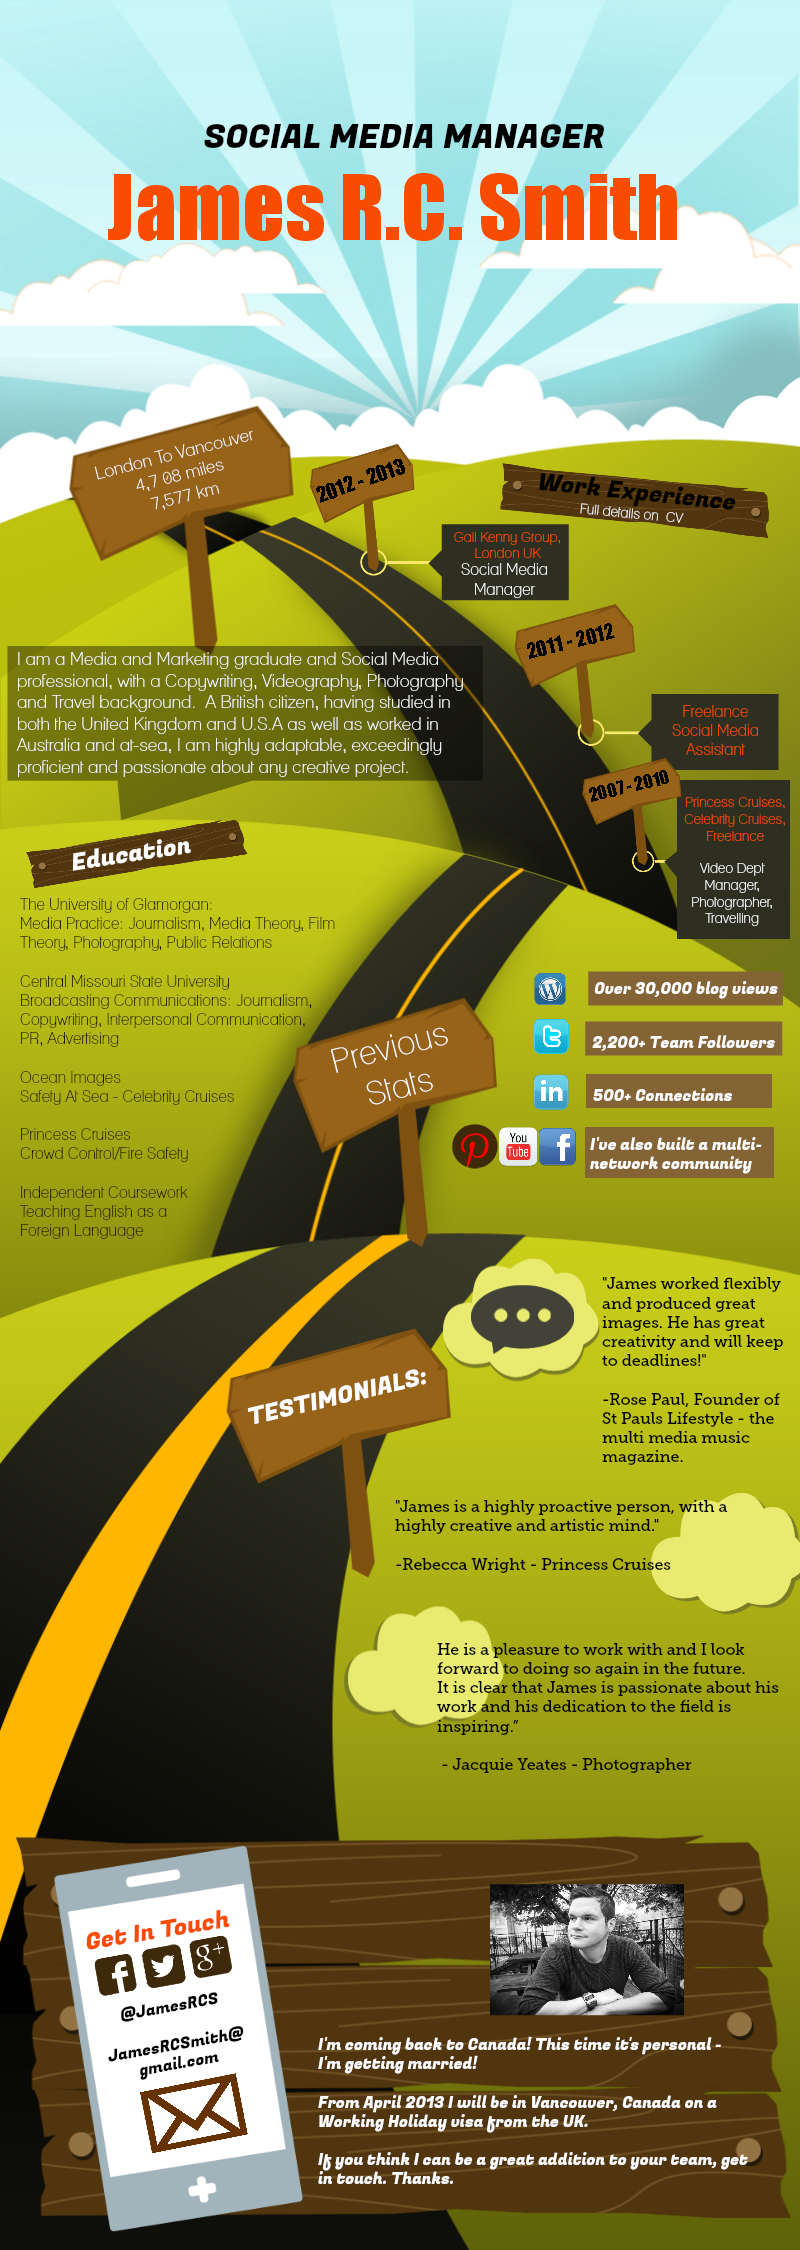 business infographics infographic cv by james r c smith business infographics infographic cv infographic cv by james r c smith infographic resume james r c smith